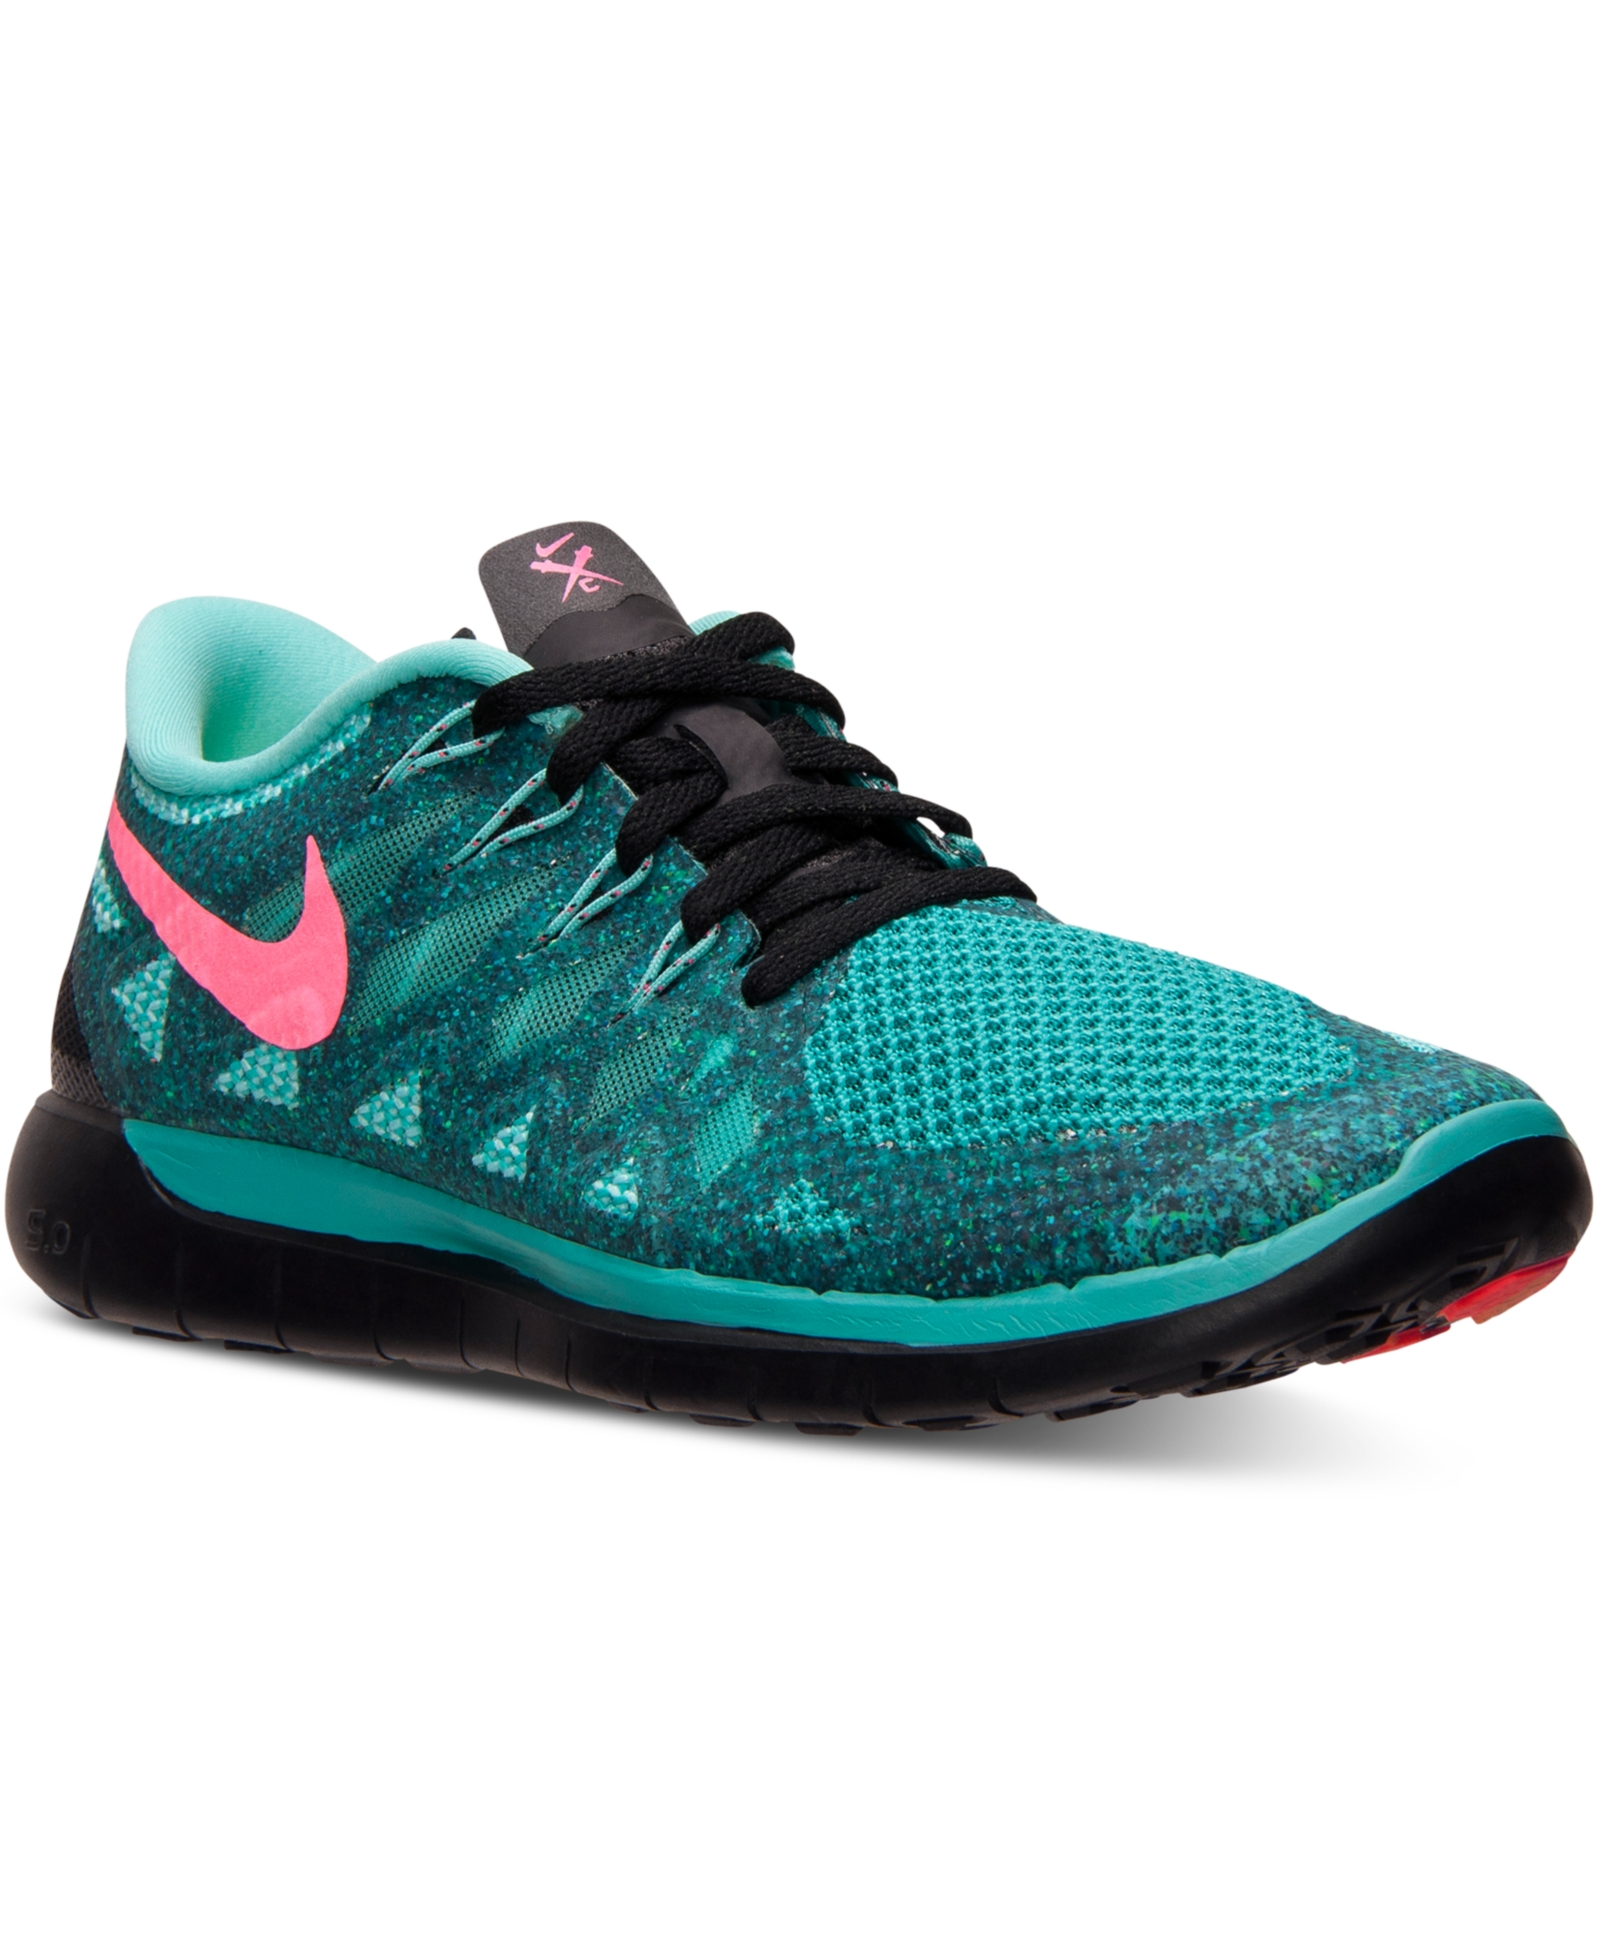 quality design ee723 f8737 ... hot nike women s free 5.0 2014 running sneakers from finish line nike  shoe 7d728 40834